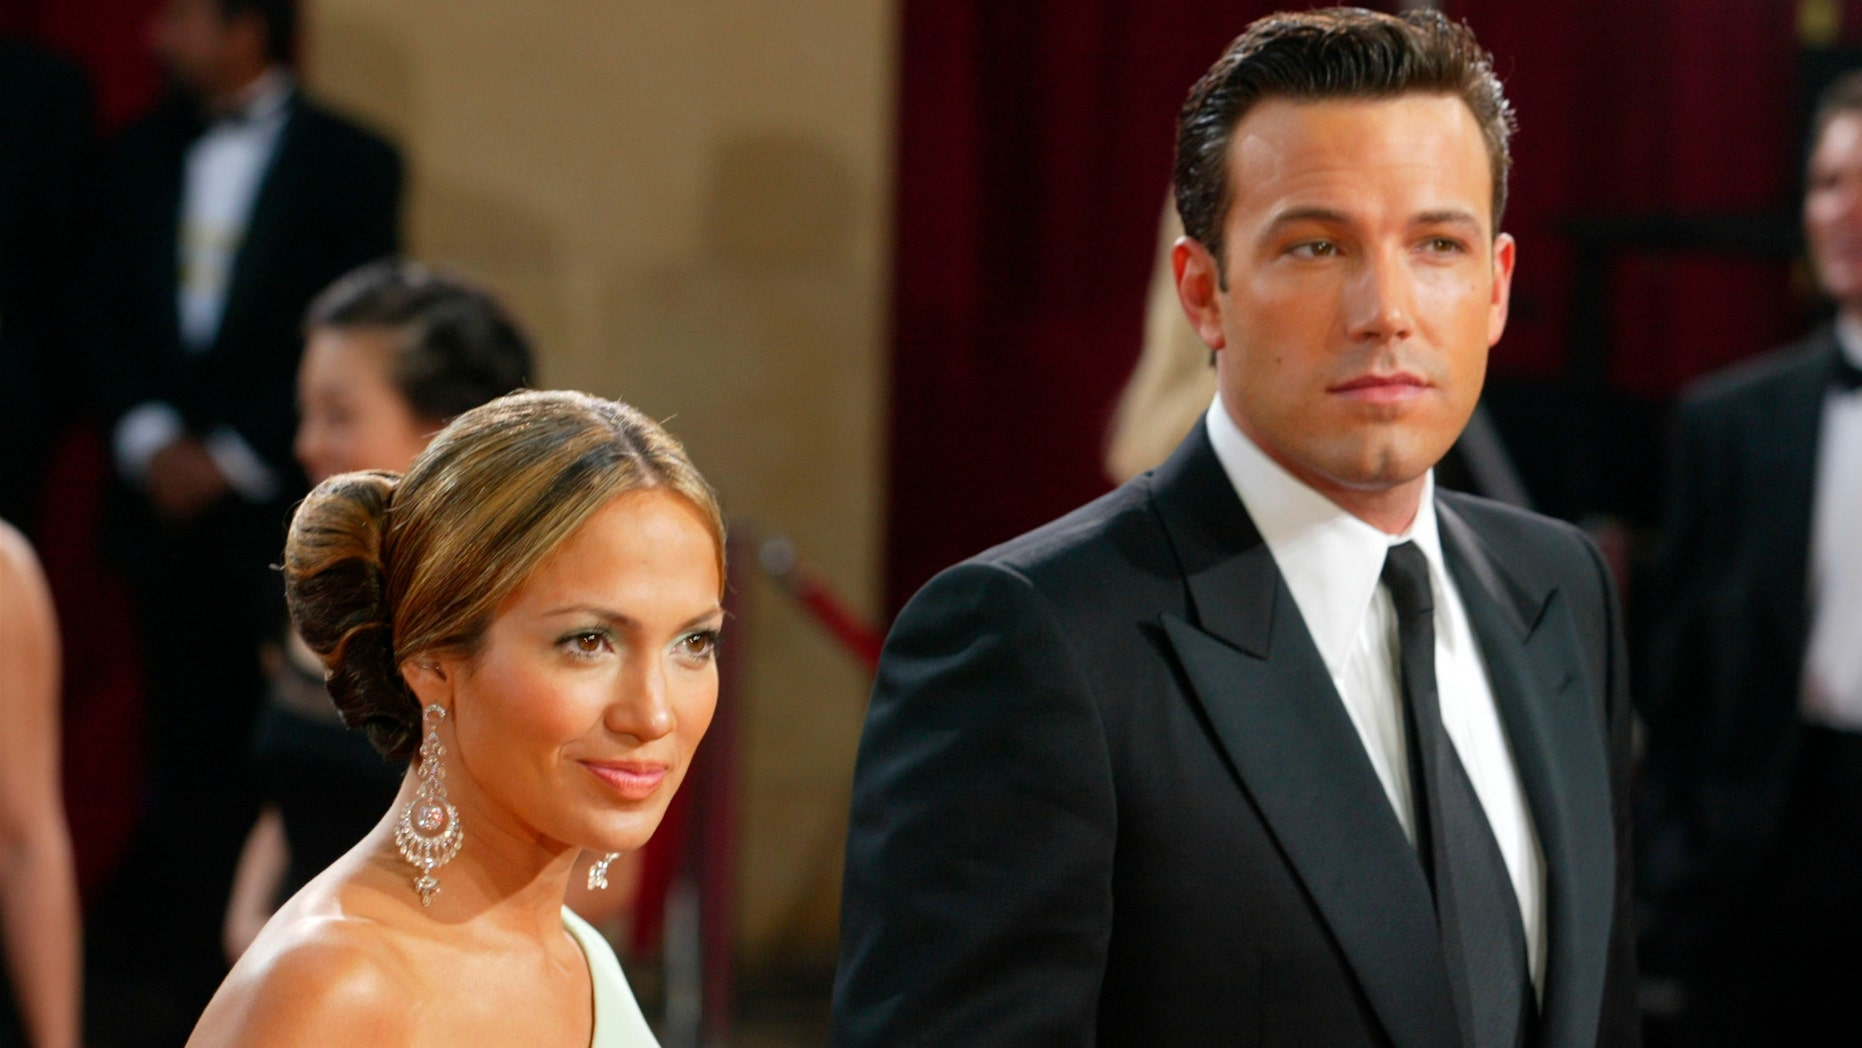 HOLLYWOOD - MARCH 23:  (FILE PHOTO) Actors Ben Affleck and fiancee Jennifer Lopez attend the 75th Annual Academy Awards at the Kodak Theater on March 23, 2003 in Hollywood, California.  Lopez and Affleck postponed their wedding, which was scheduled for this weekend, and has now reportedly spit up, possibly temporarily.  (Photo by Kevin Winter/Getty Images)